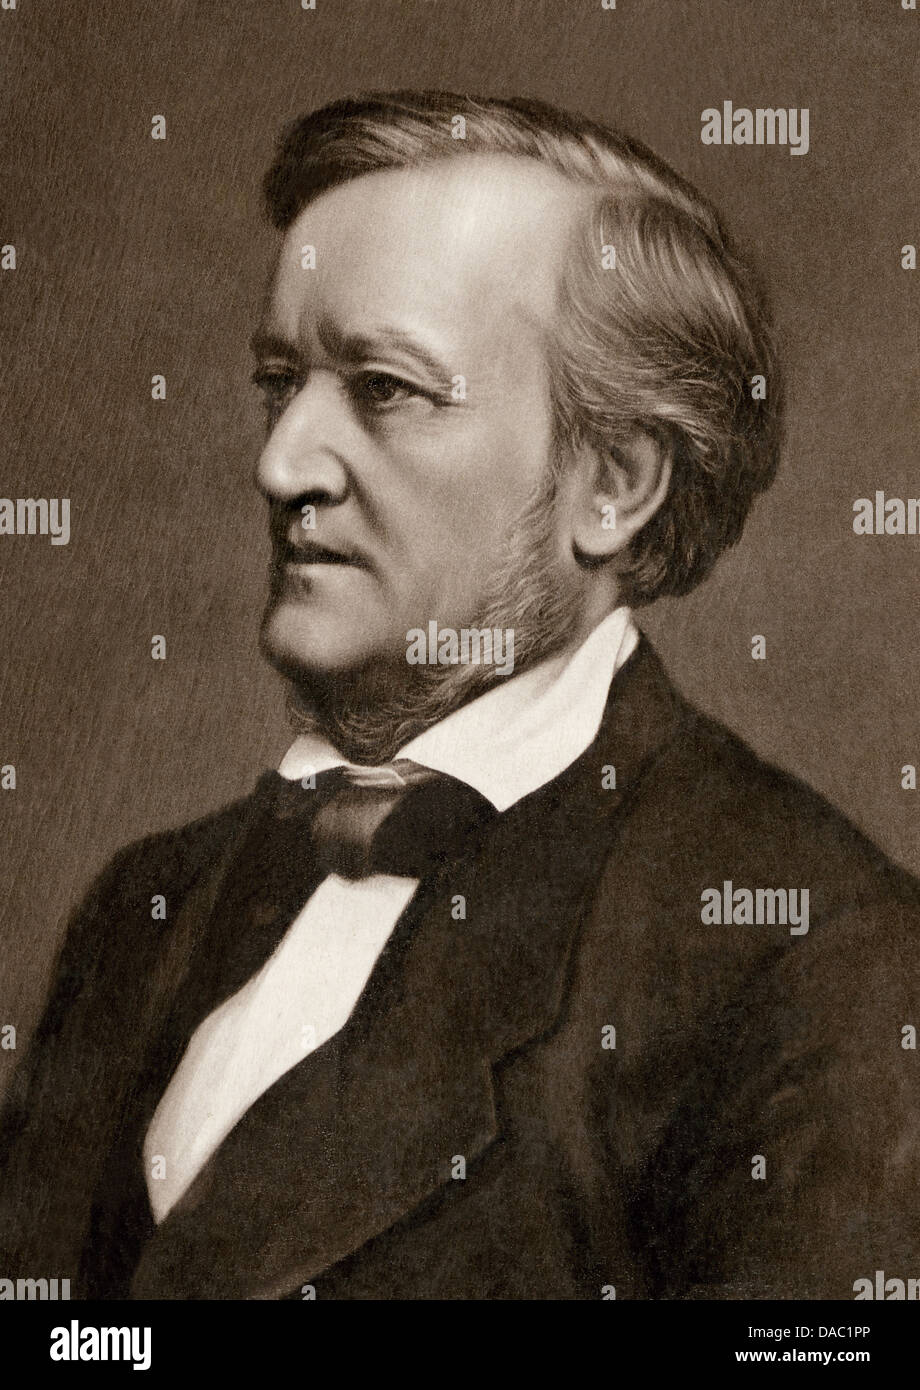 Photograph of composer Richard Wagner. Photograph - Stock Image